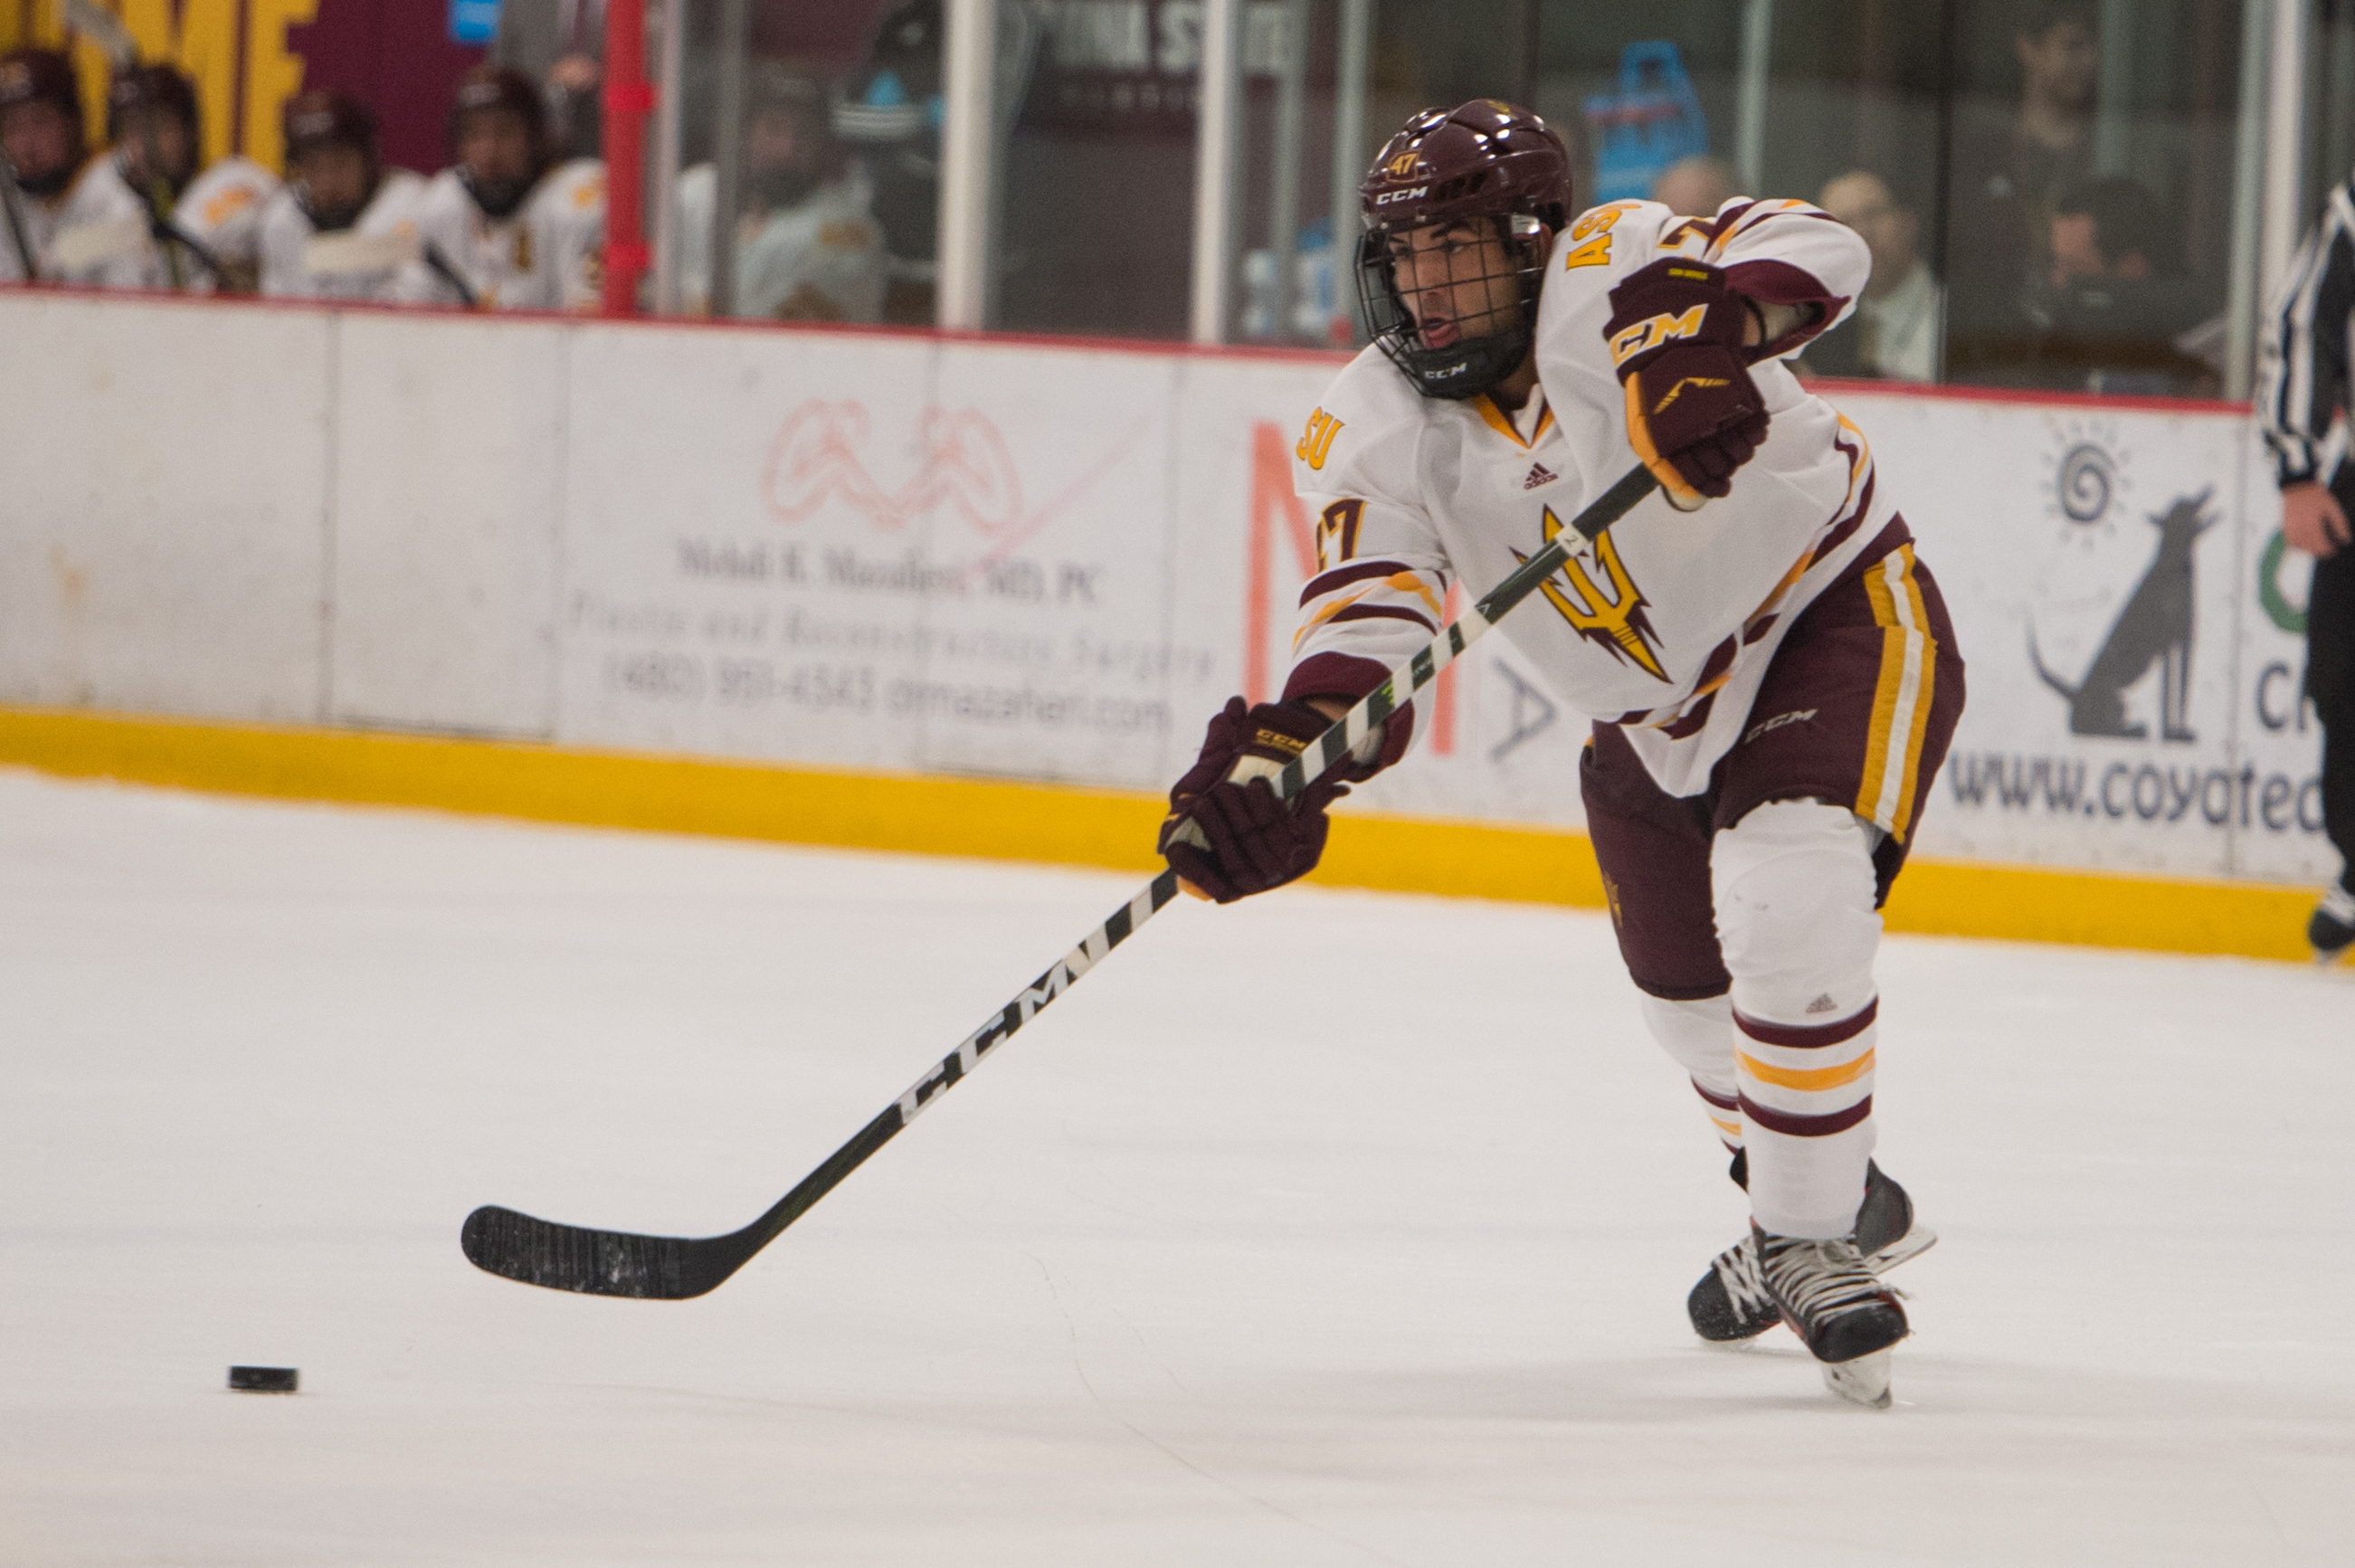 NCAA: ASU Sun Devils Overpower RPI 5-3 In Home Victory